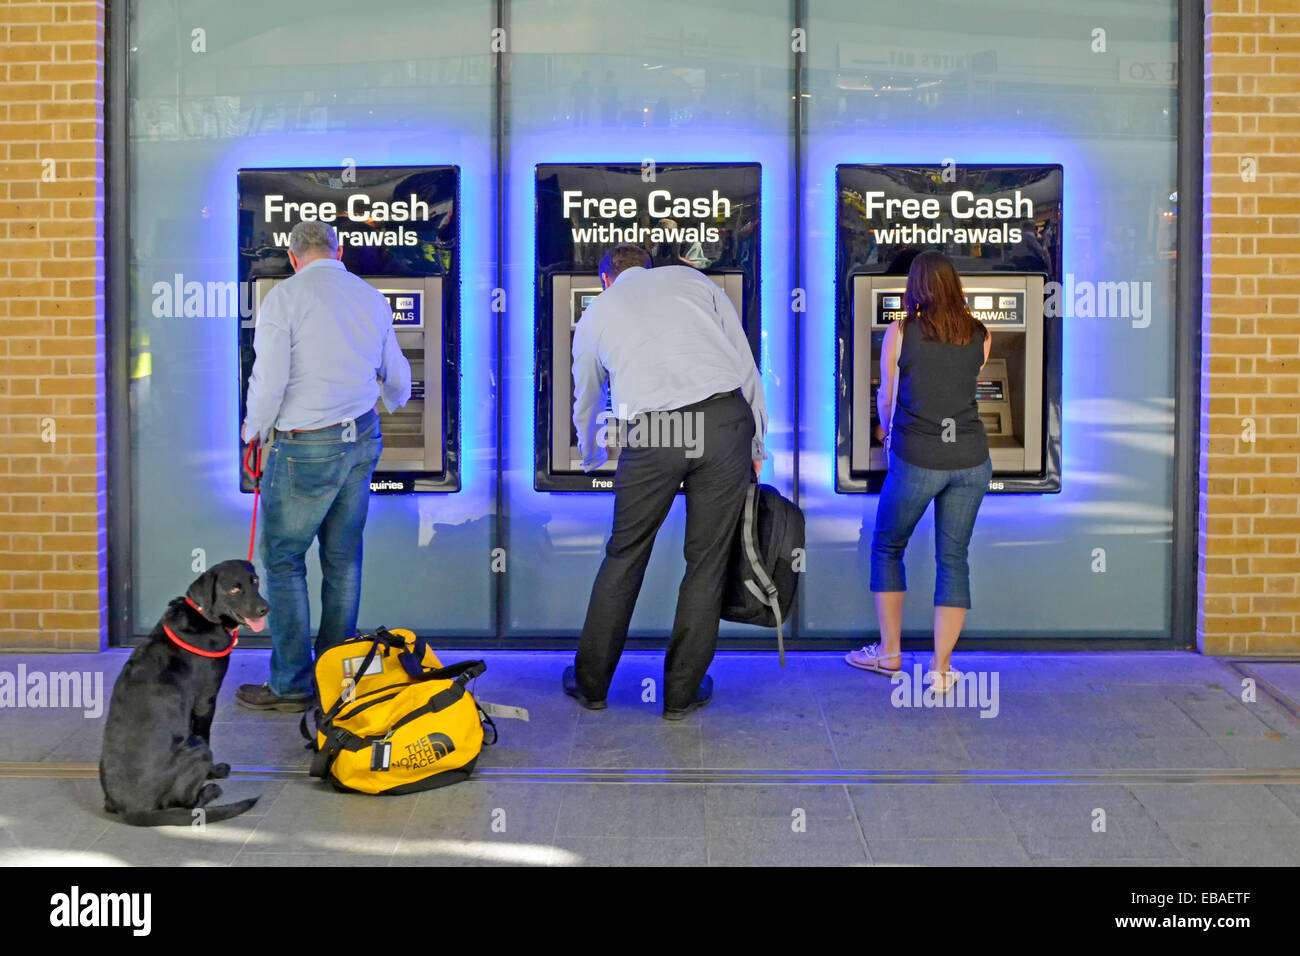 Dog with owner and two other people using atm machines at railway station Stock Photo